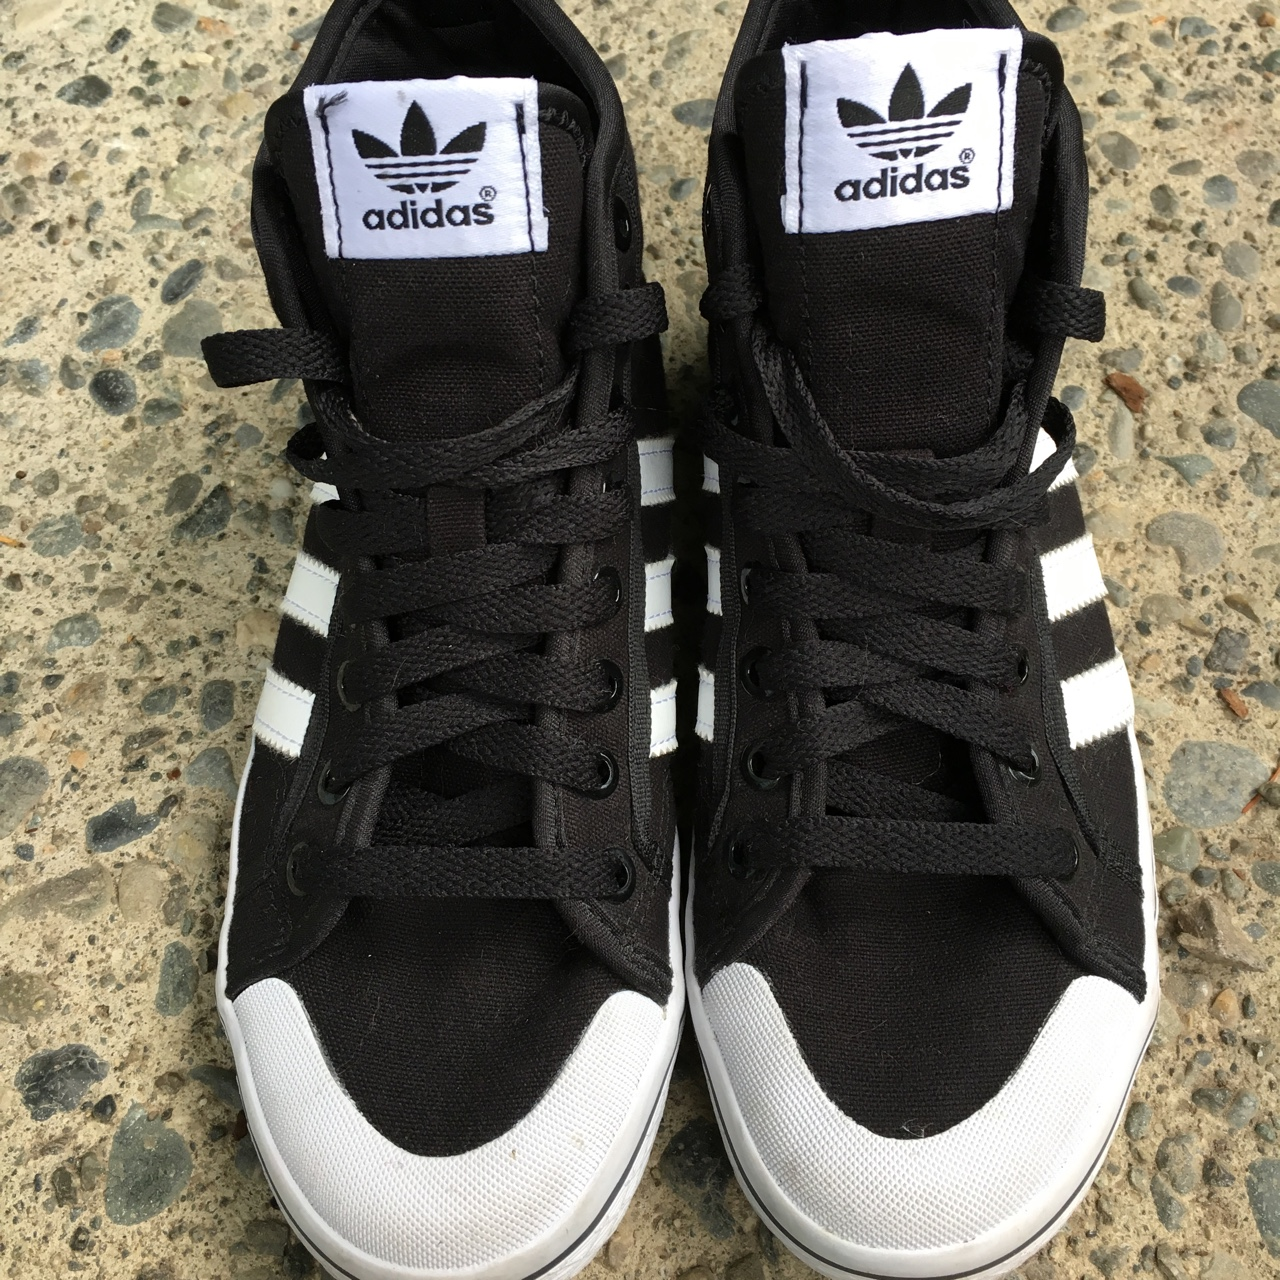 Adidas High Tops Black and White. Women